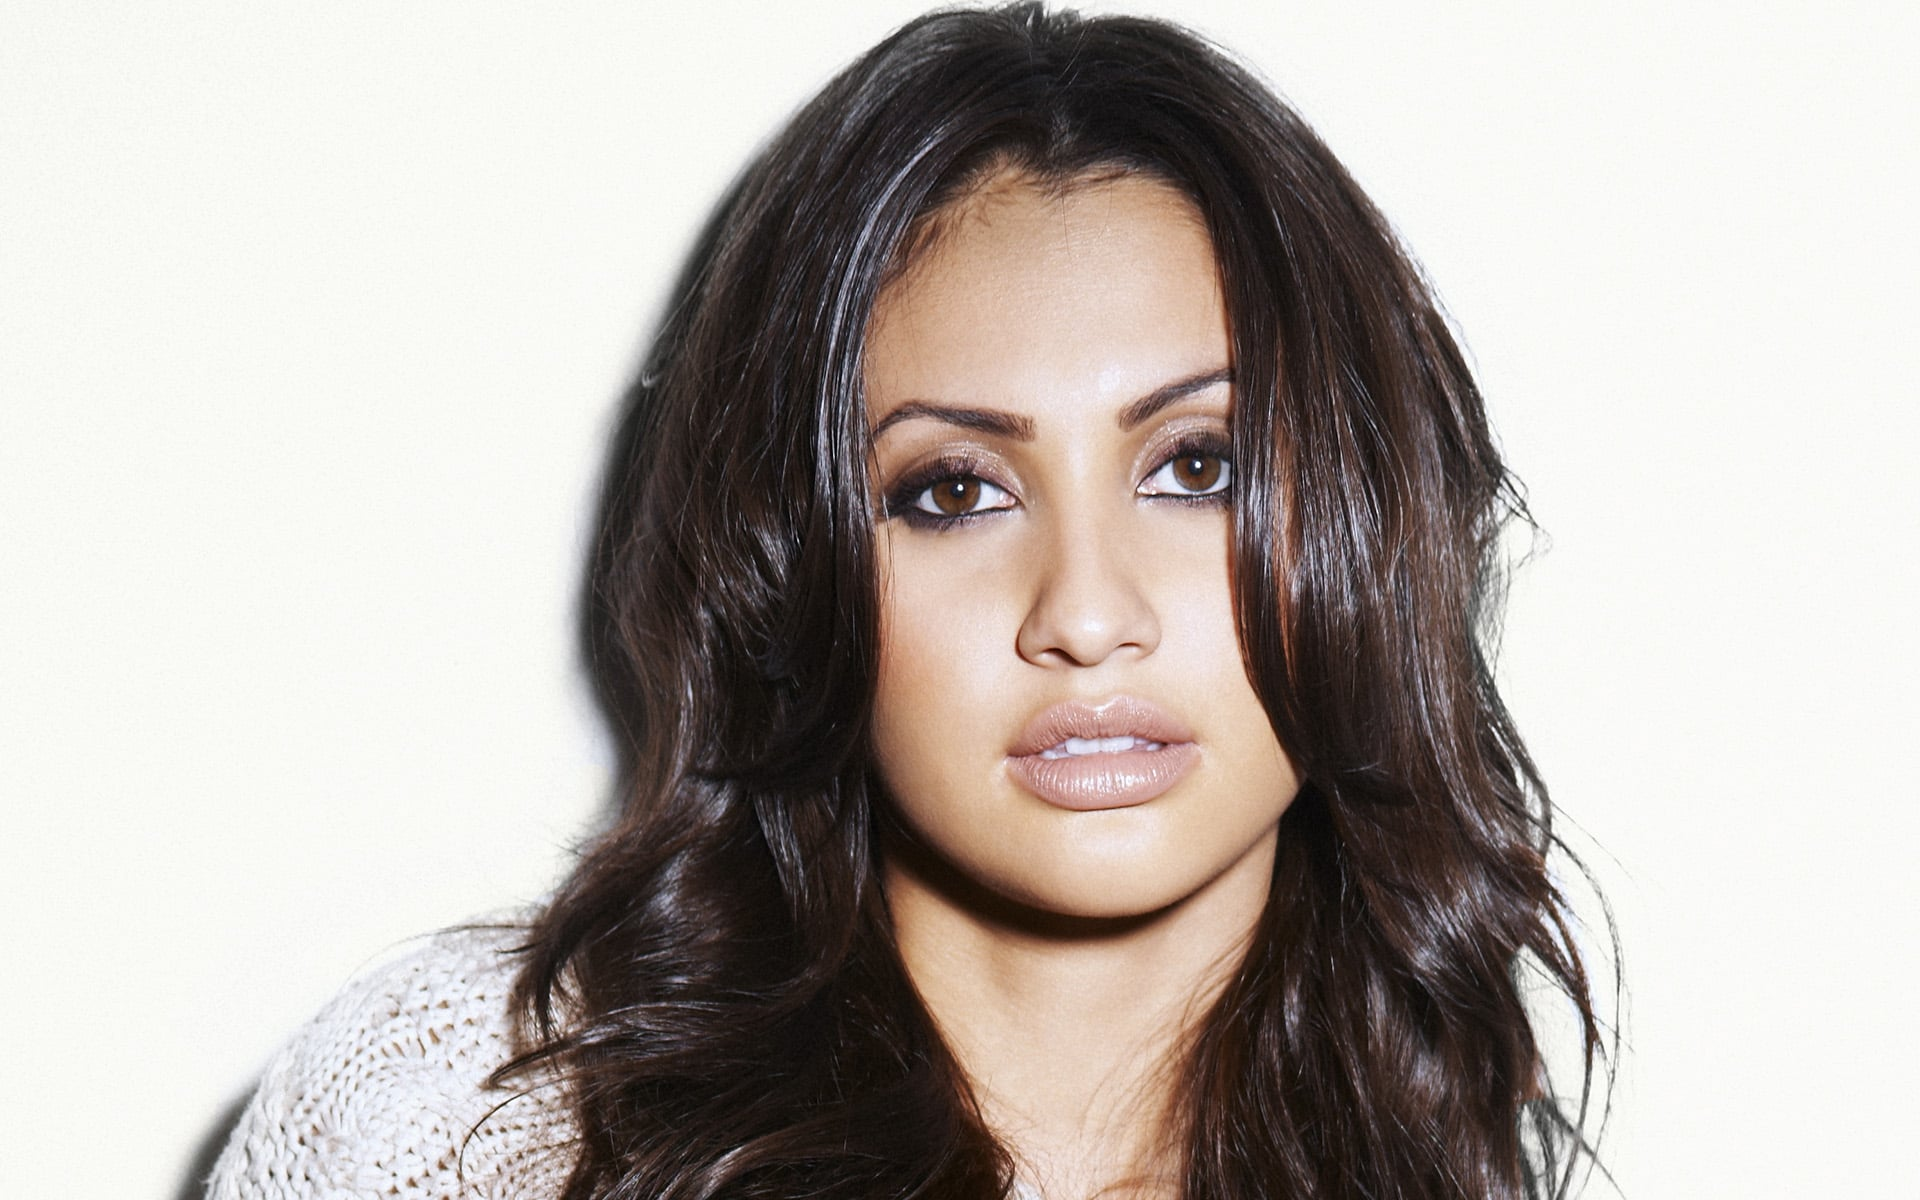 20+ Francia Raisa wallpapers HD High Quality Download